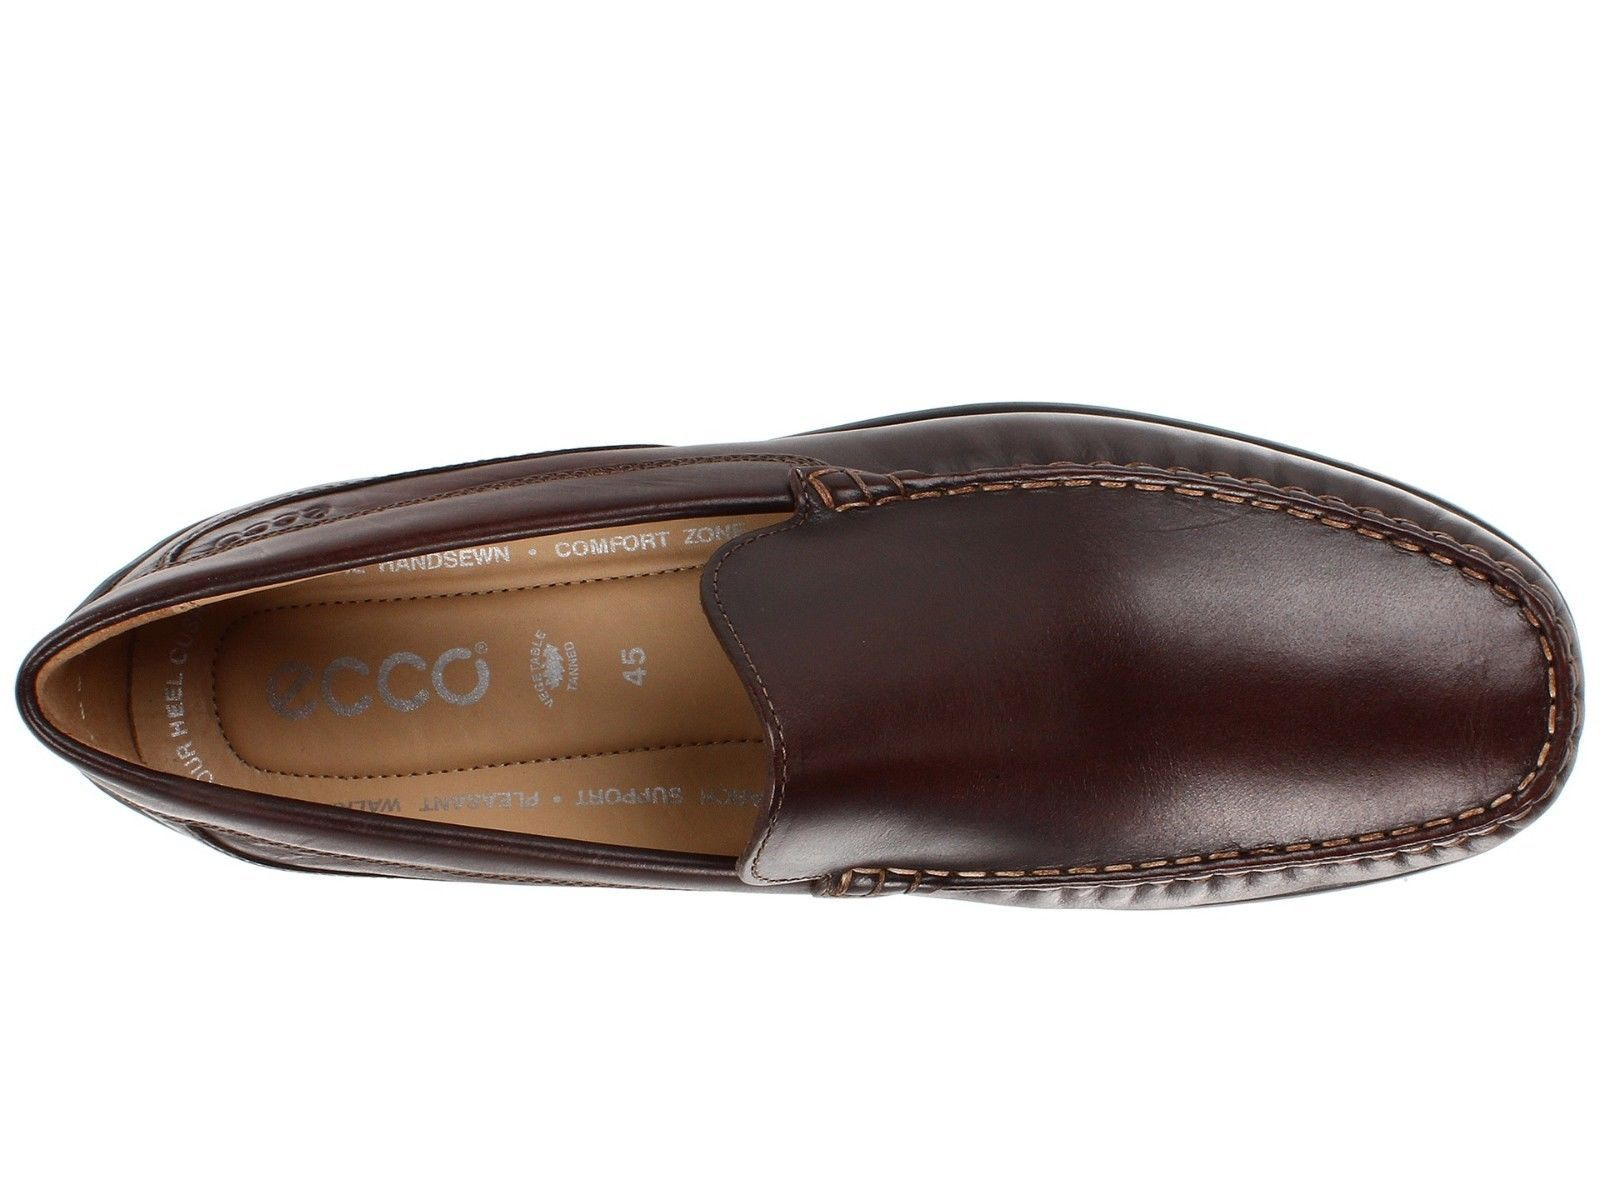 ee61b98d Men's ECCO Classic Moc Loafer, 571004 01072 and 50 similar items